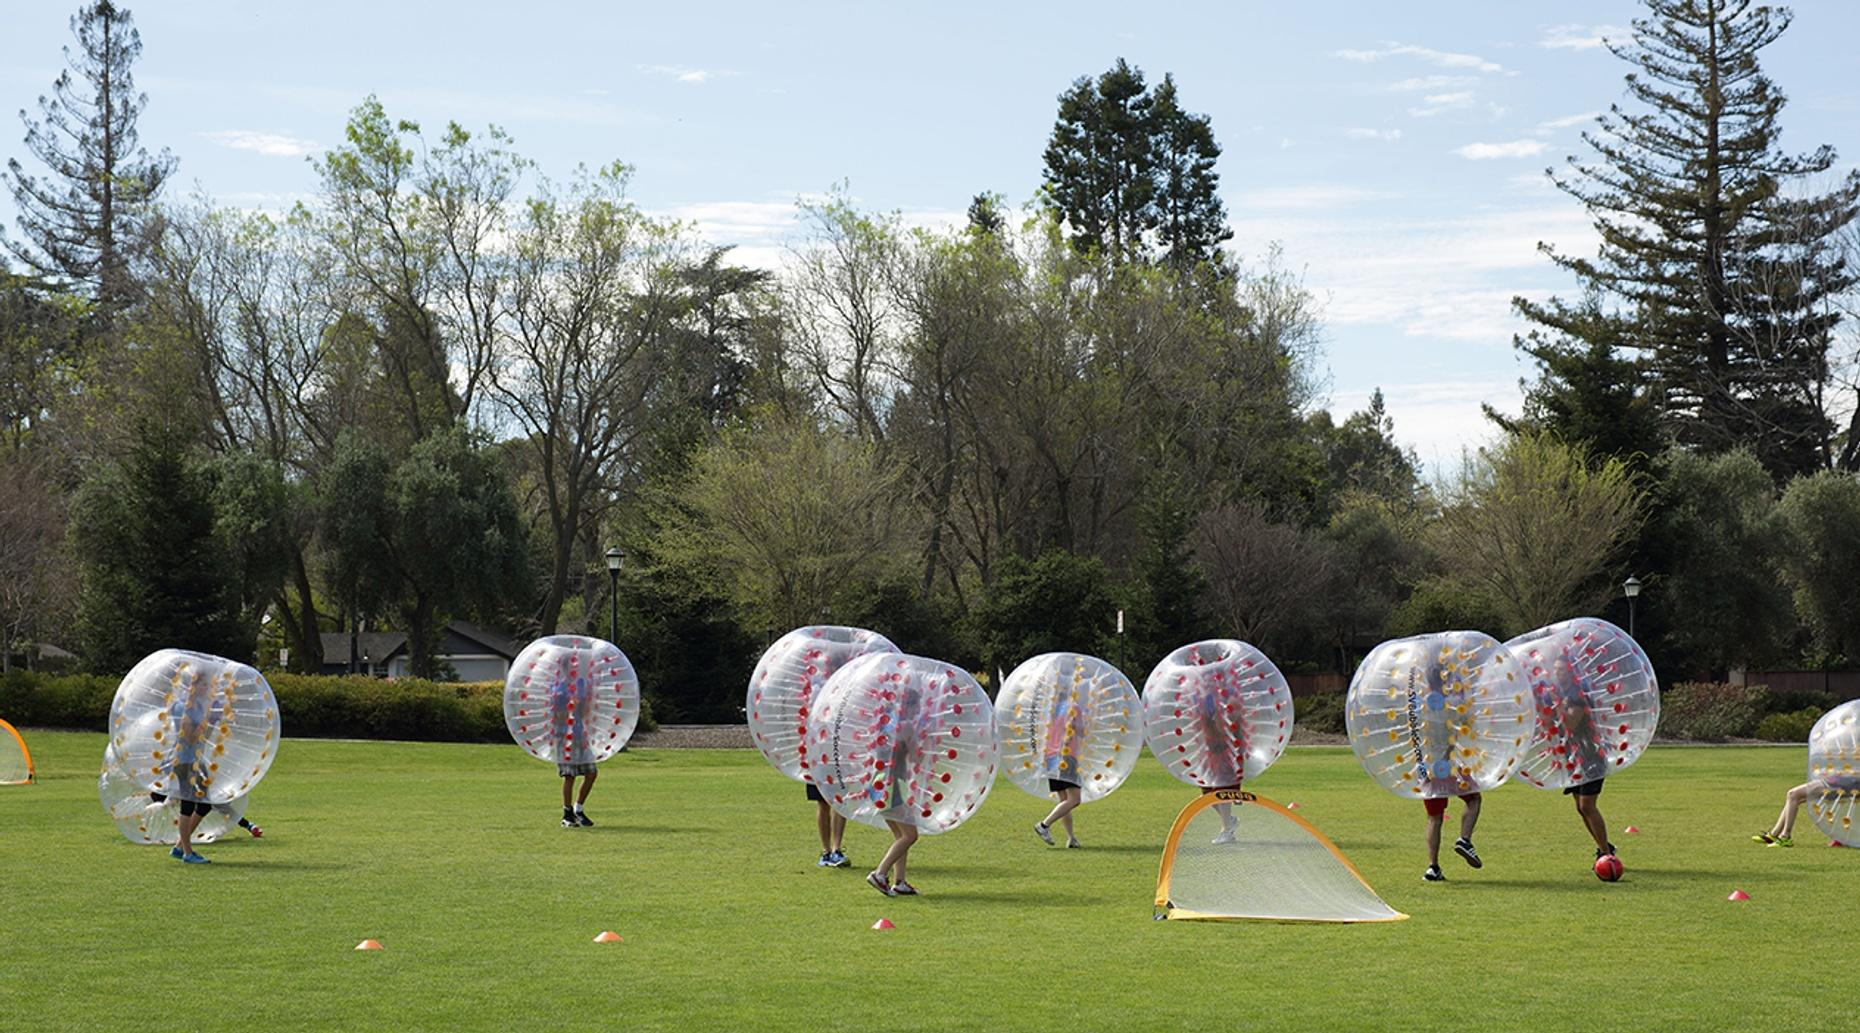 Hour and a Half Bubble Soccer Game in Richmond